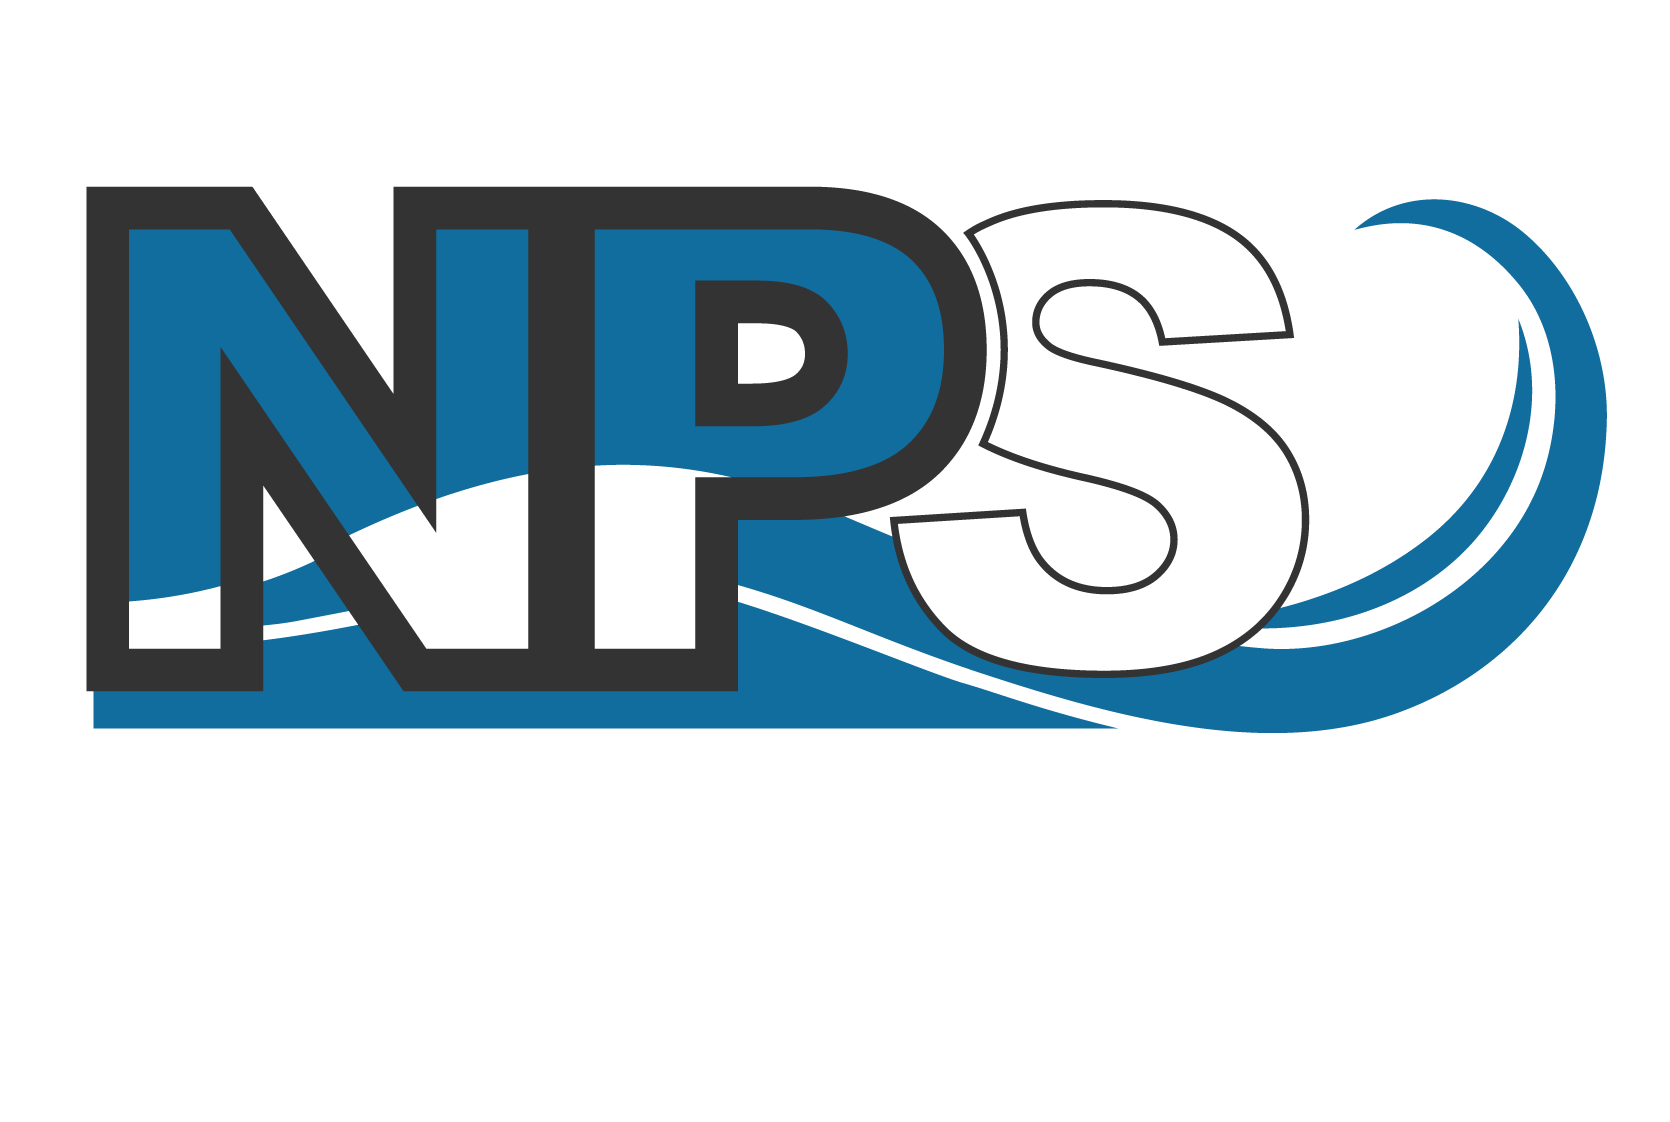 The North Point Sports